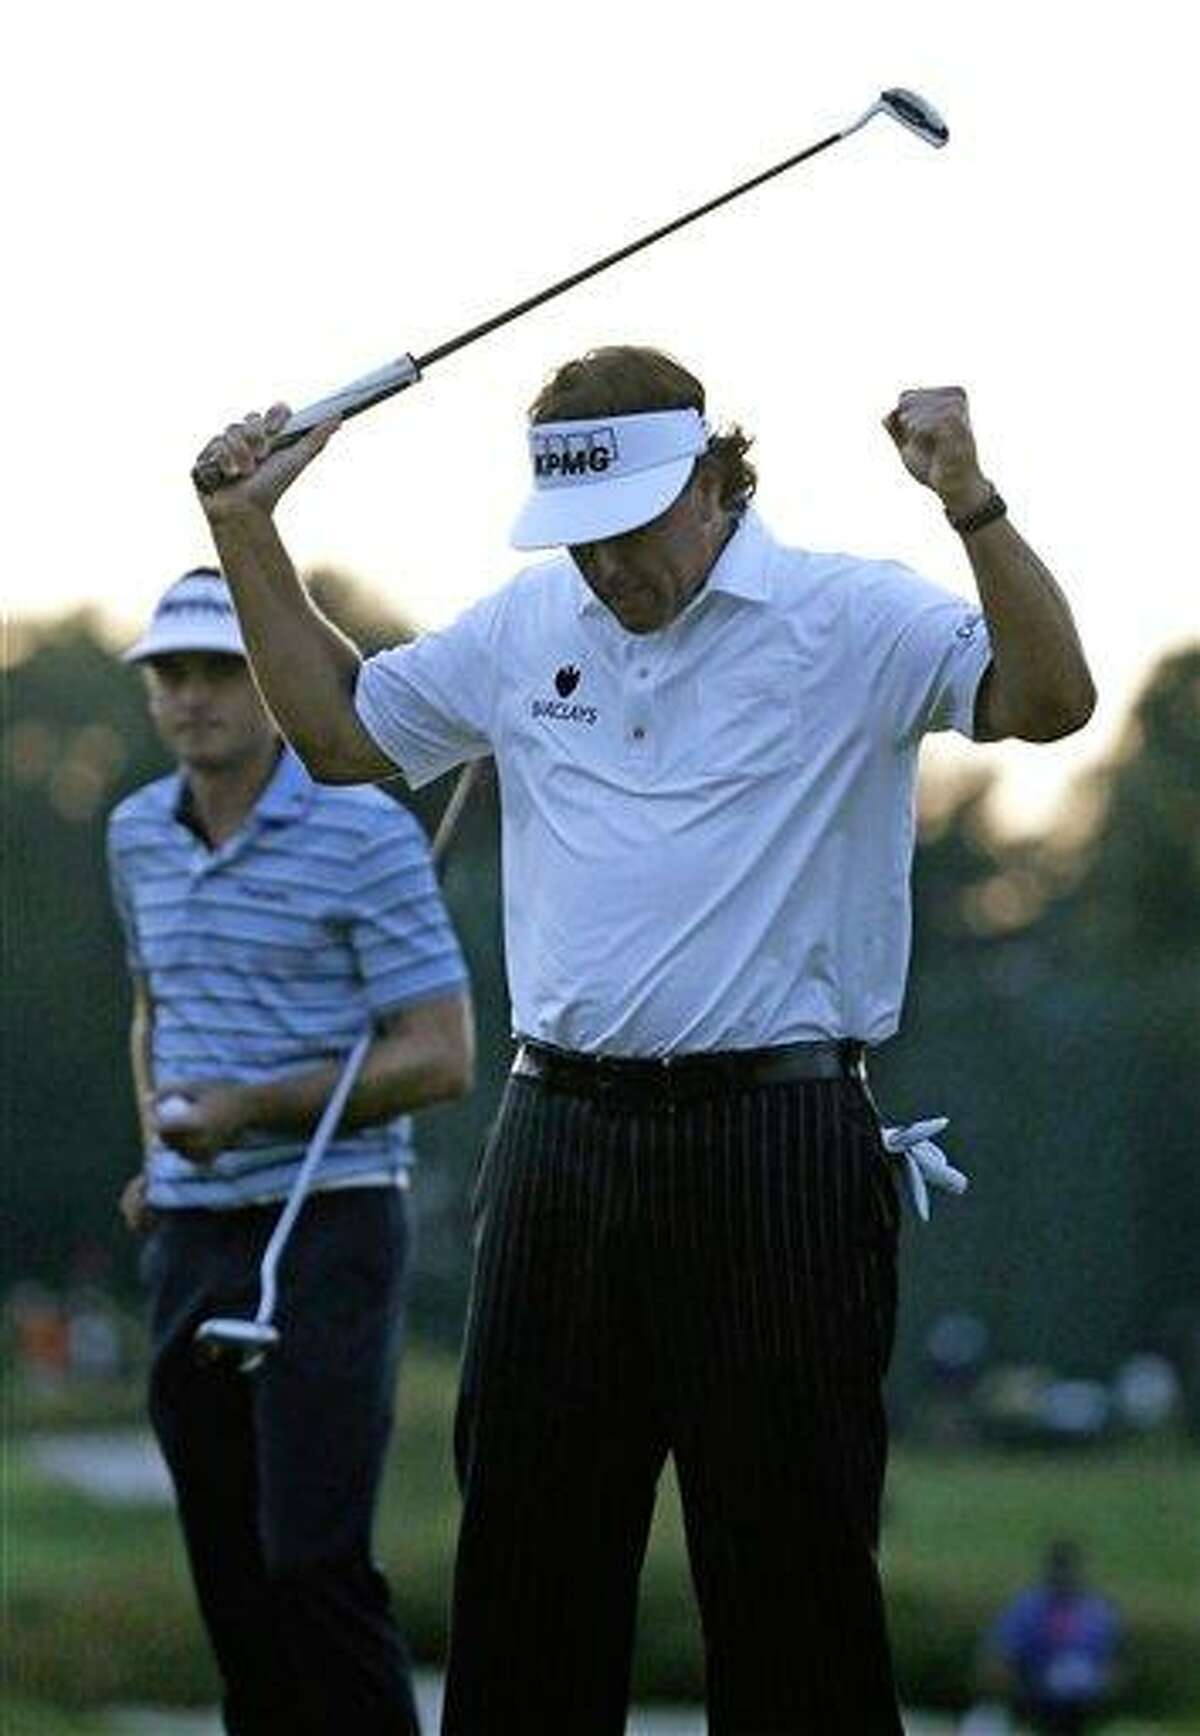 Phil Mickelson reacts after his birdie putt on the 18th hole during the second round of the U.S. Open golf tournament at Merion Golf Club, Friday, June 14, 2013, in Ardmore, Pa. (AP Photo/Morry Gash)